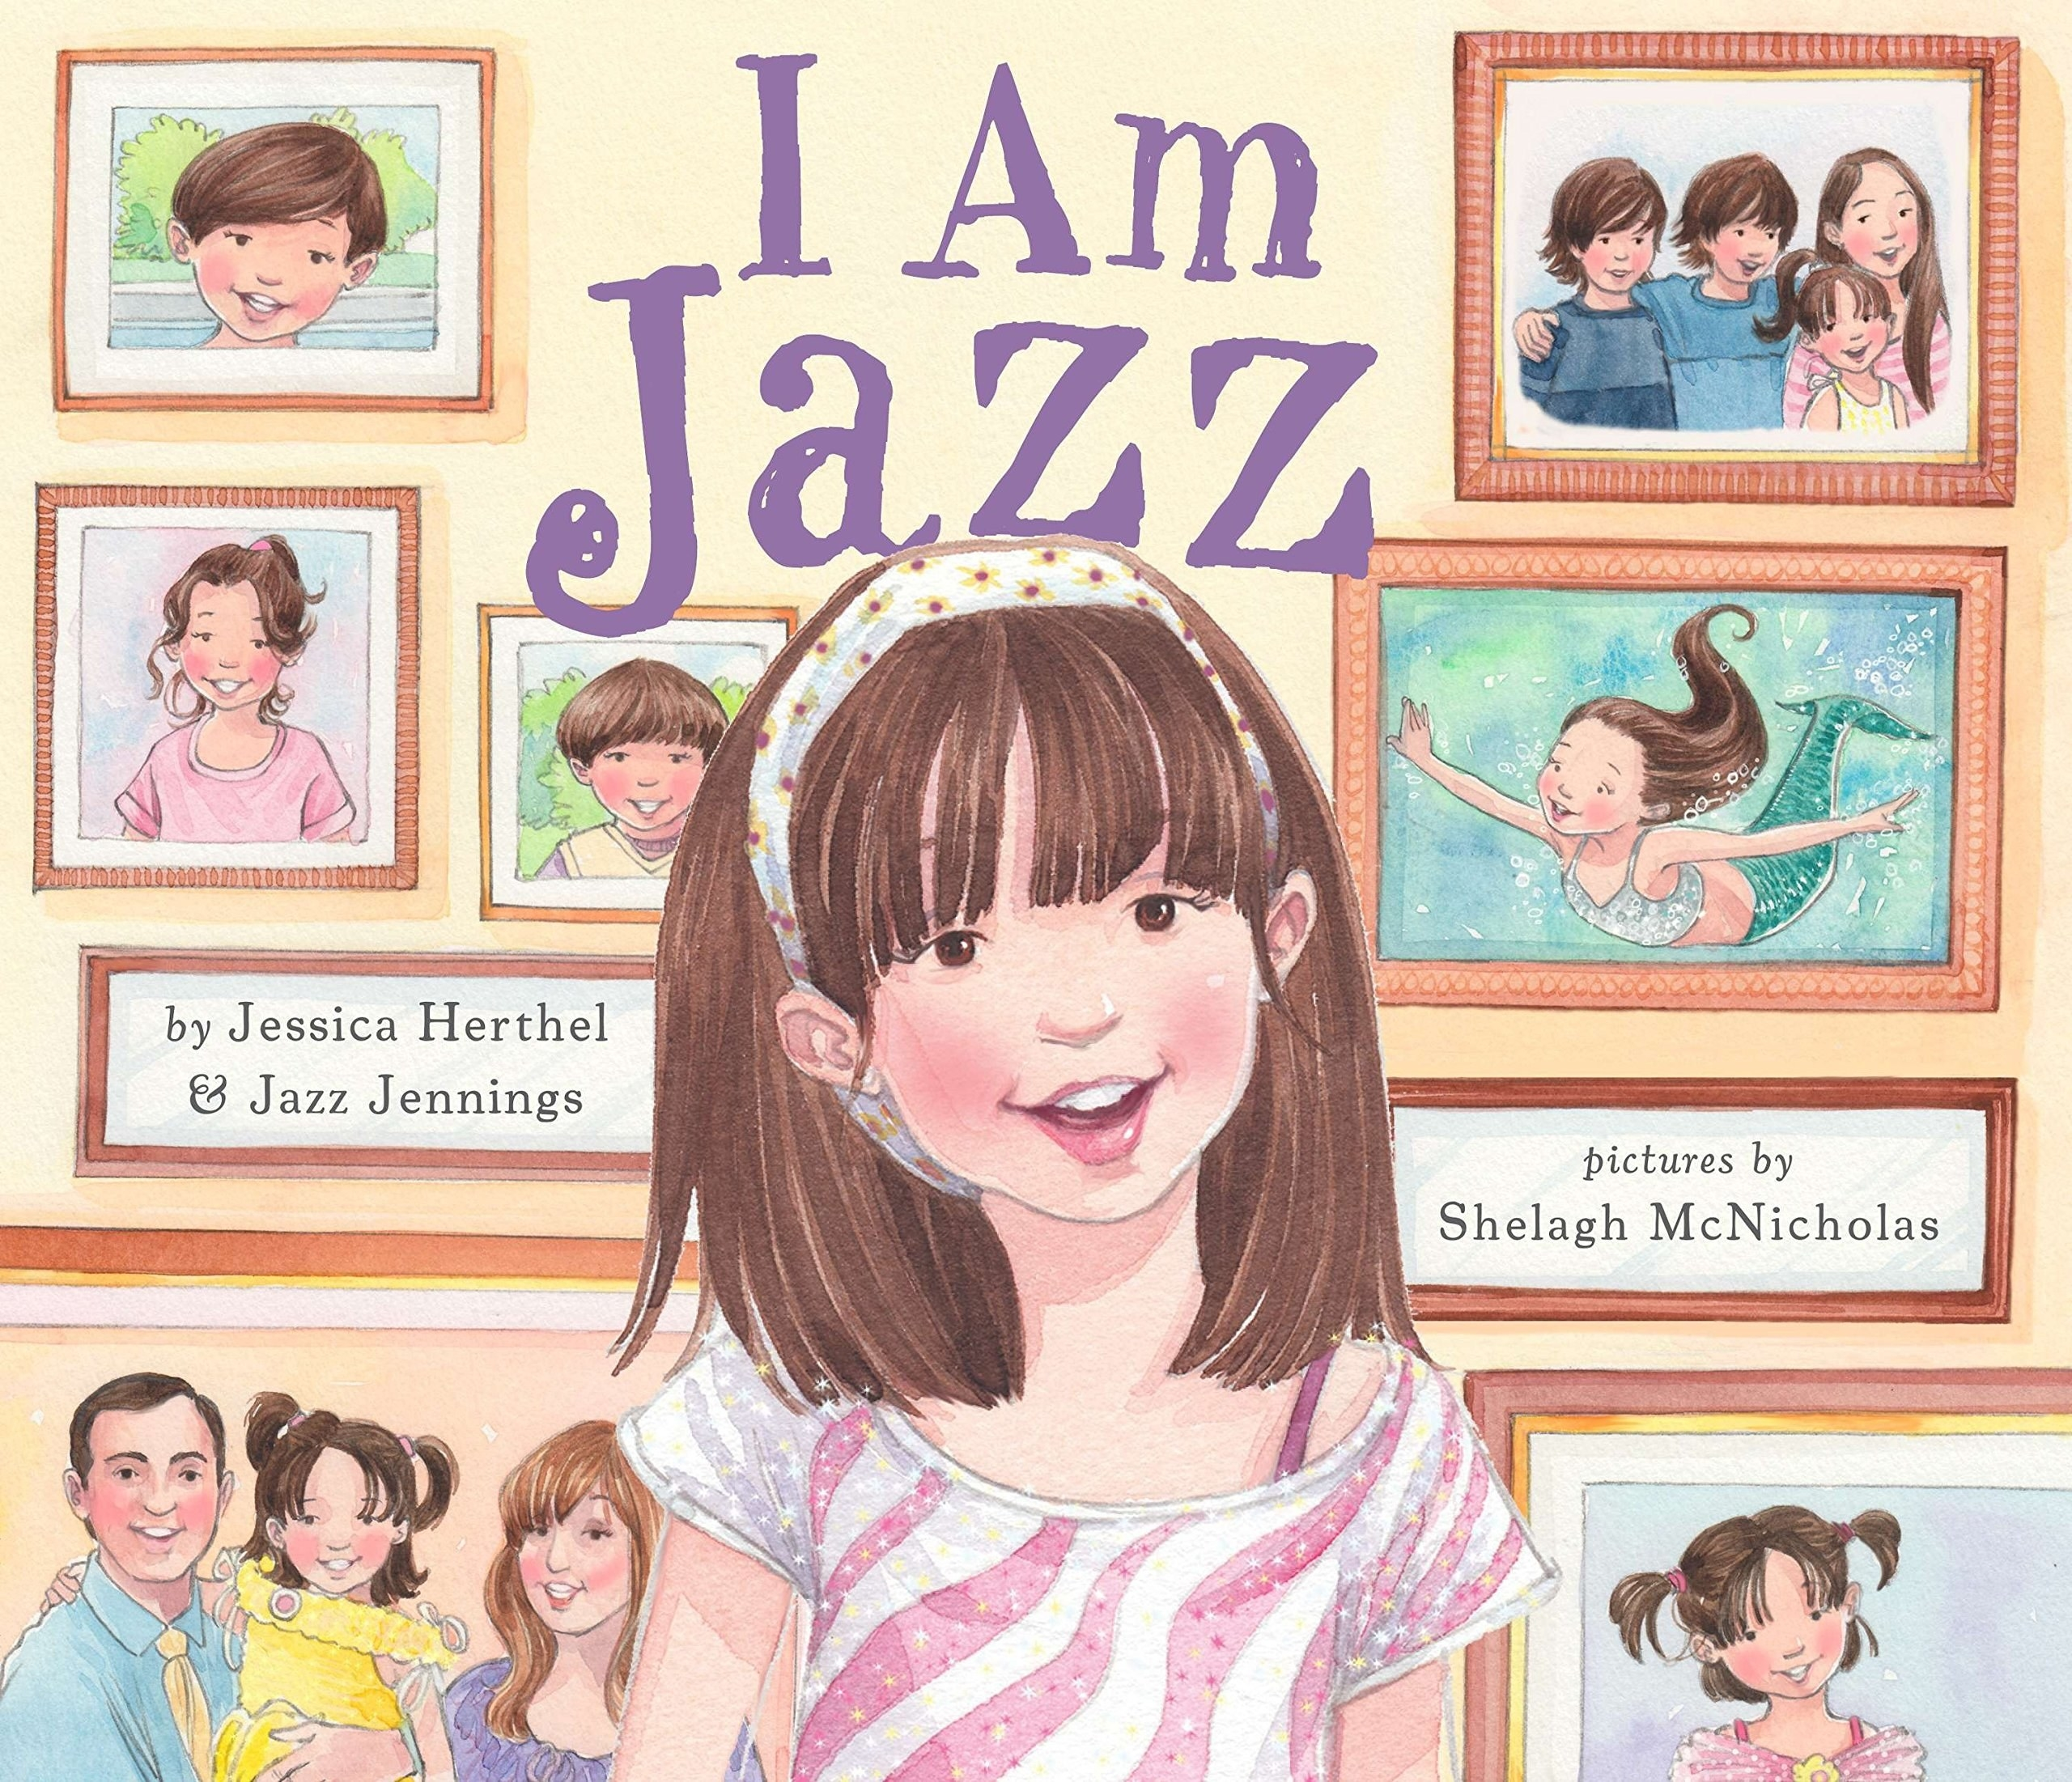 Jazz smiling and surrounded by her parents as well as photographs of herself